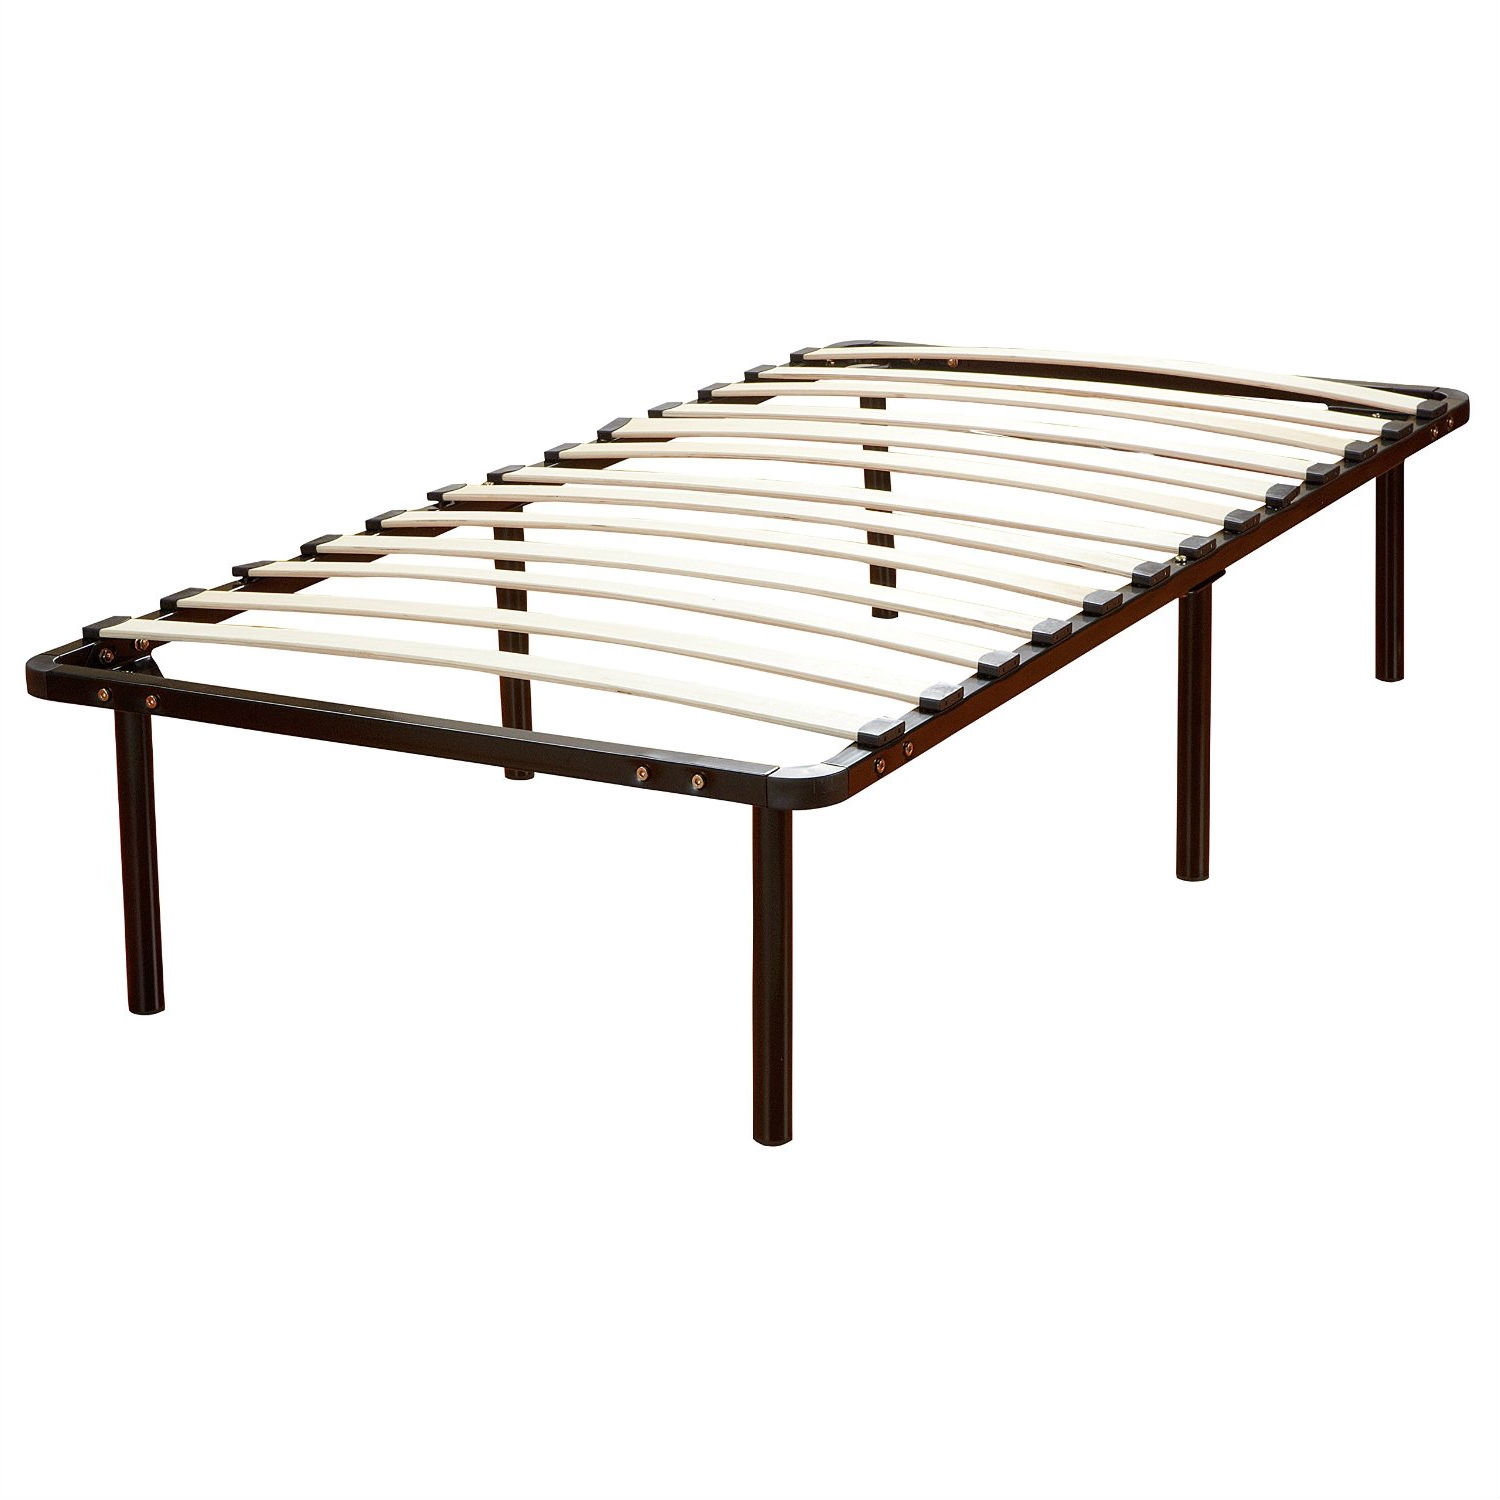 Twin Size Metal Platform Bed Frame With Wooden Slats